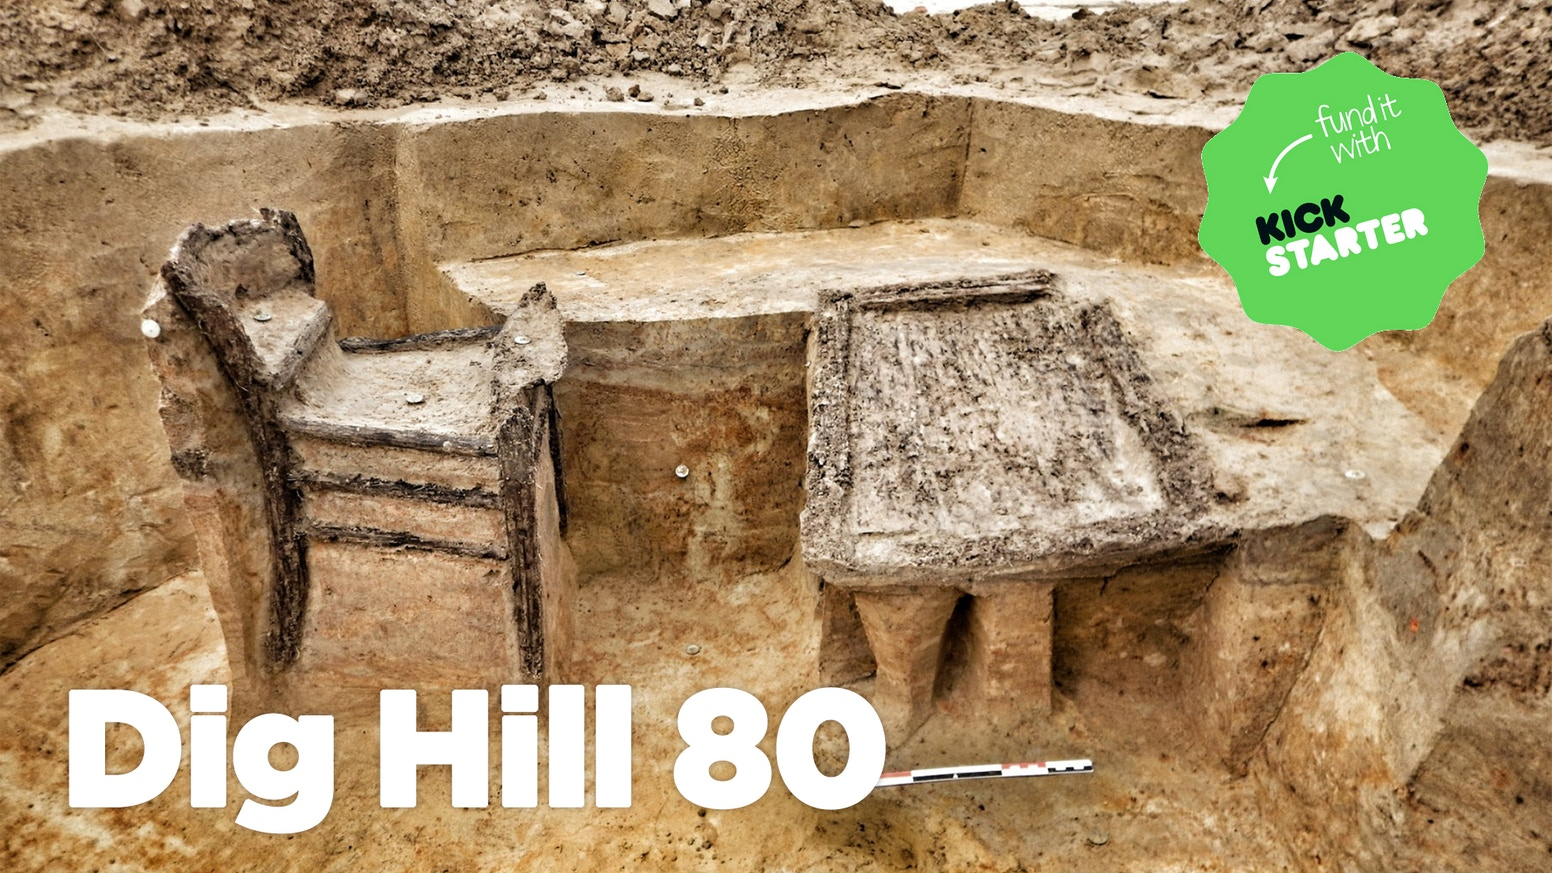 ⭐ Dig Hill 80: Excavating an Endangered WW1 Battlefield by